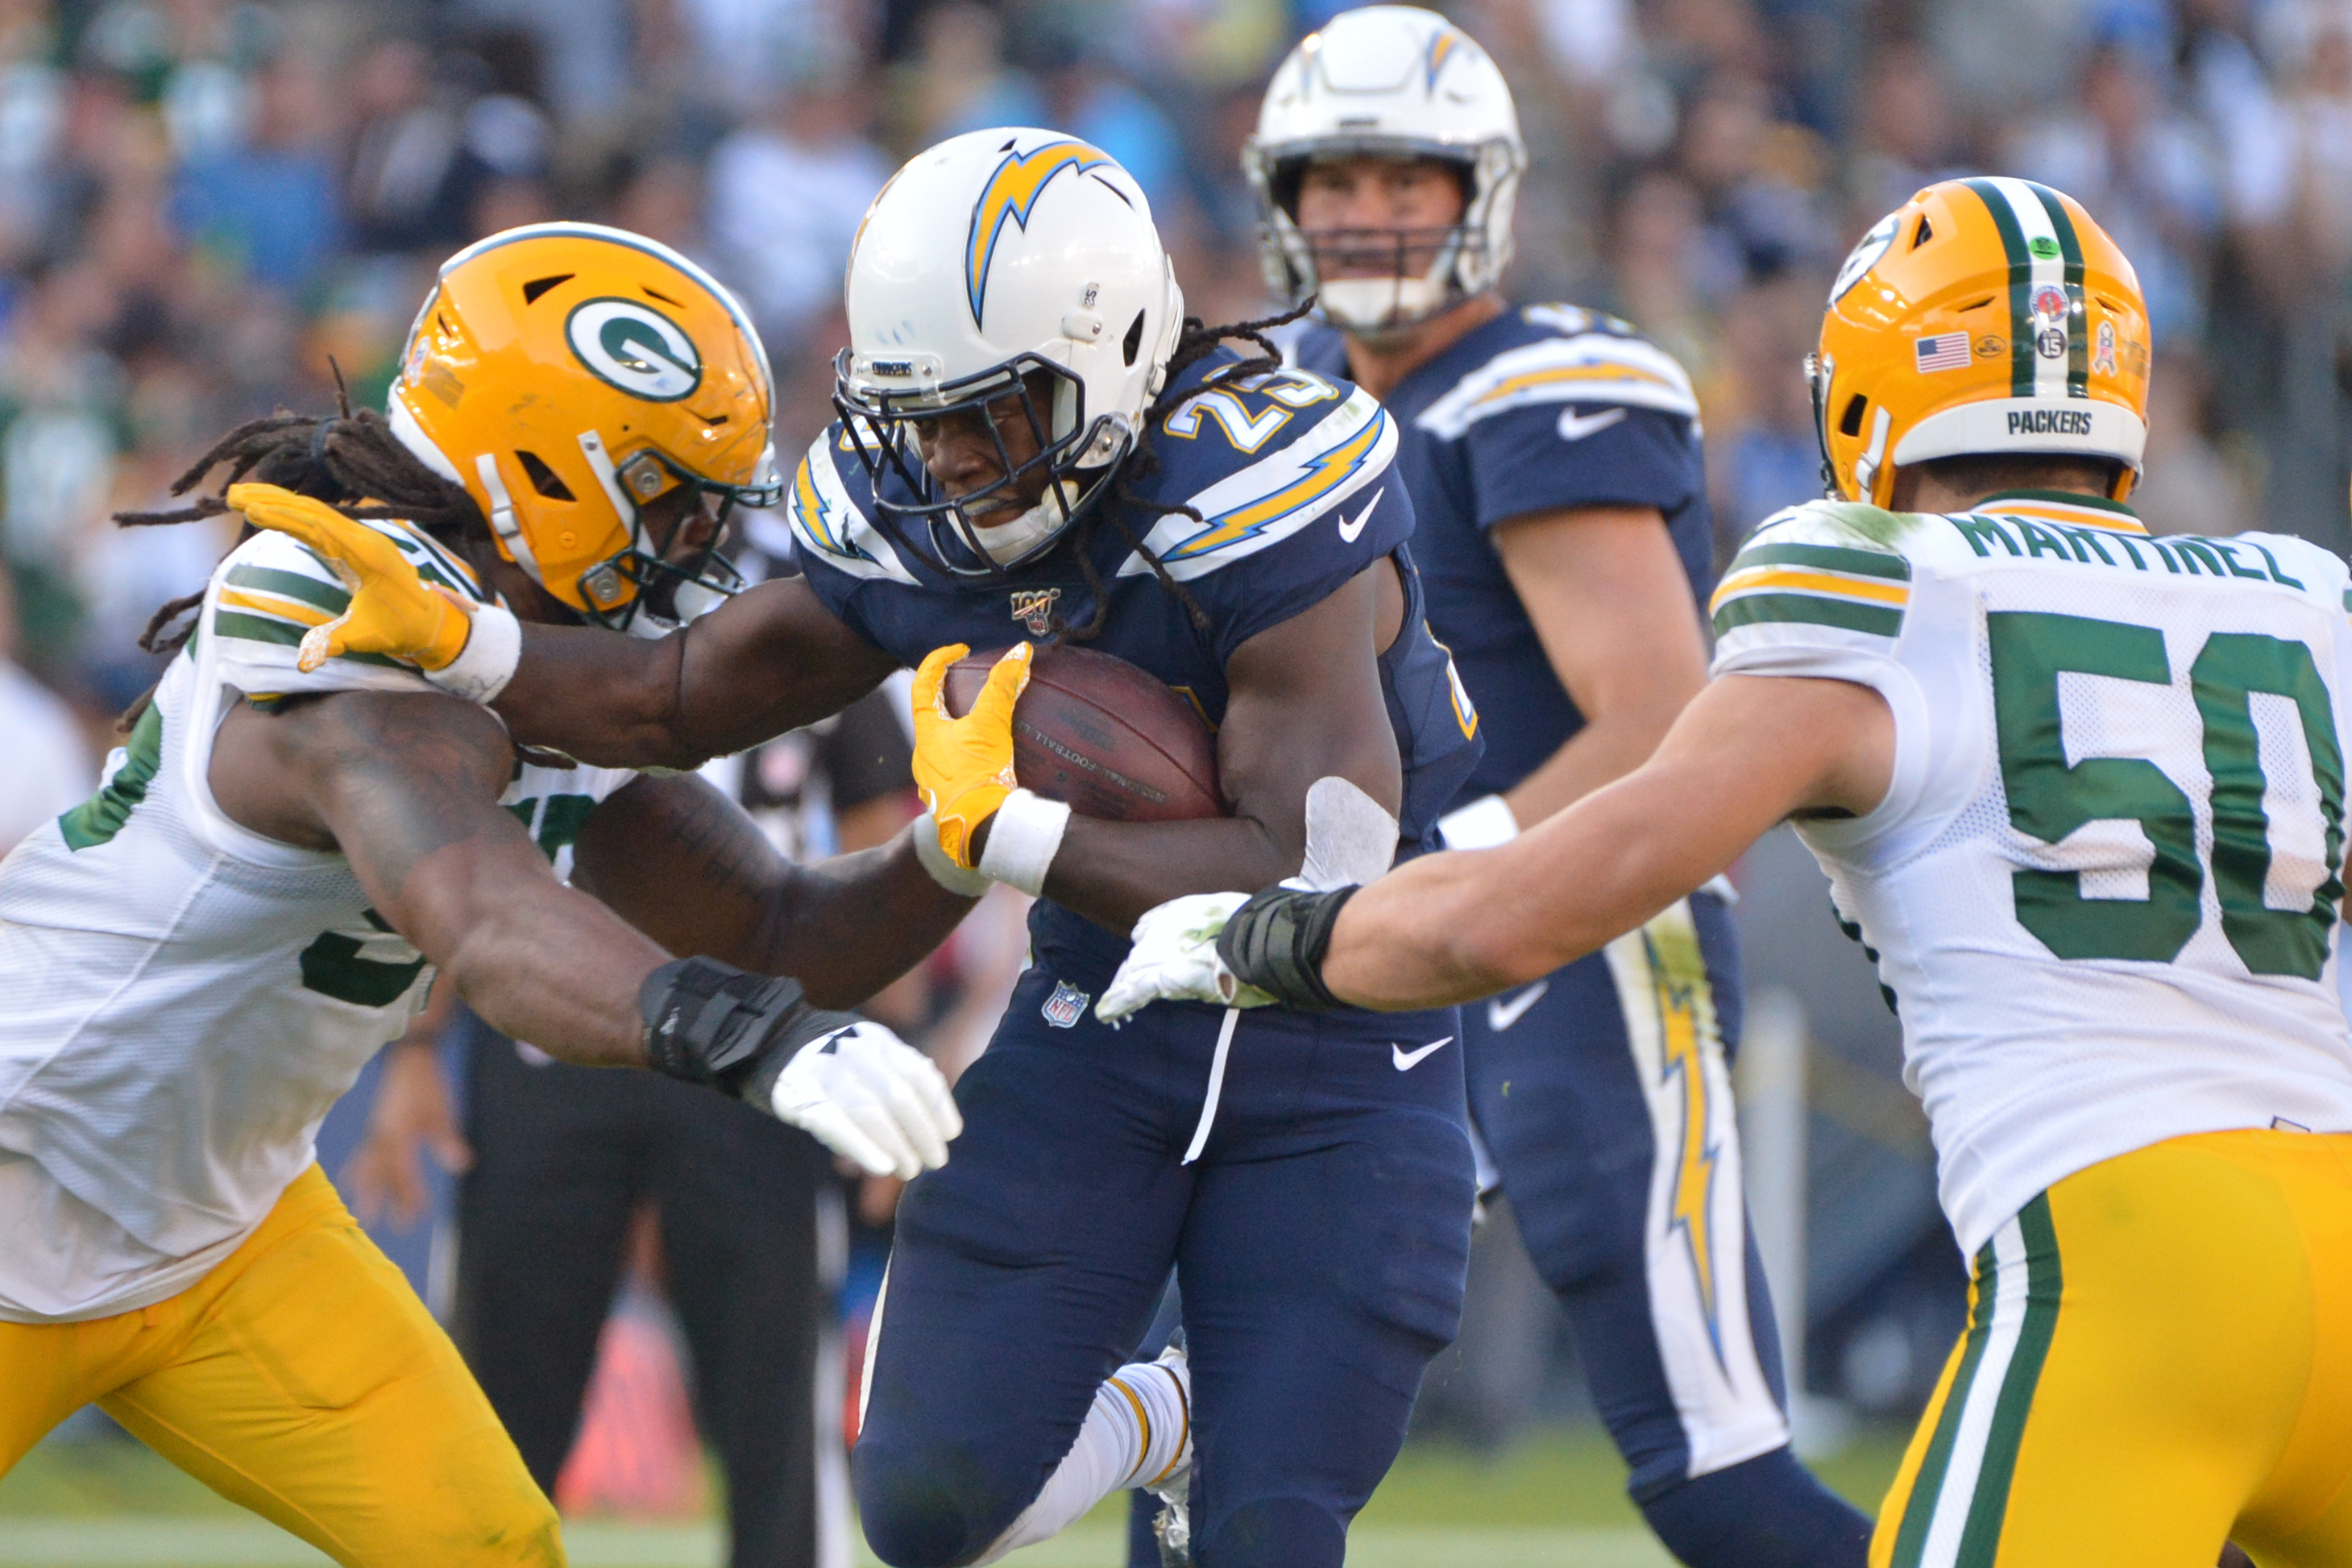 NFL: Green Bay Packers at Los Angeles Chargers